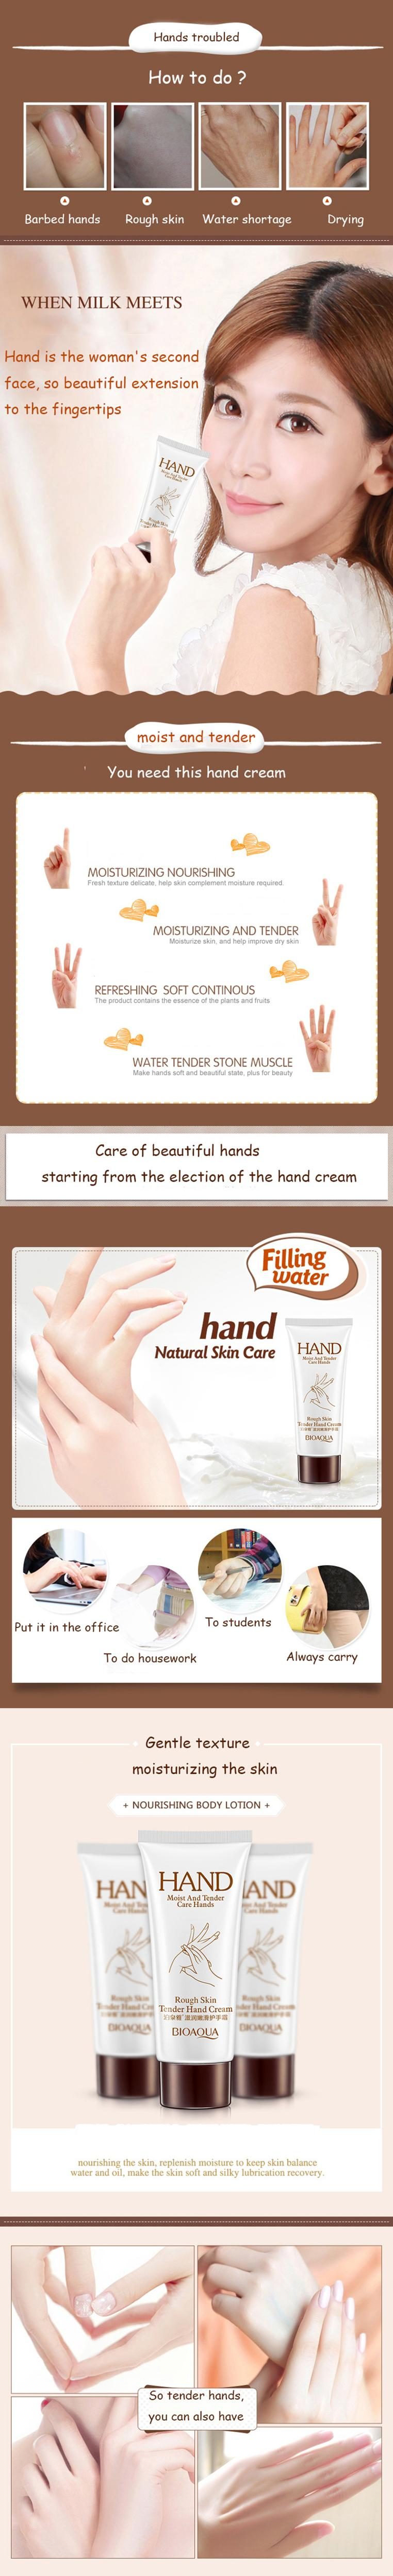 a643a5ca4c1 BIOAQUA Brand Hand Cream Hydrating Hand Lotion Anti-chapping Hand ...